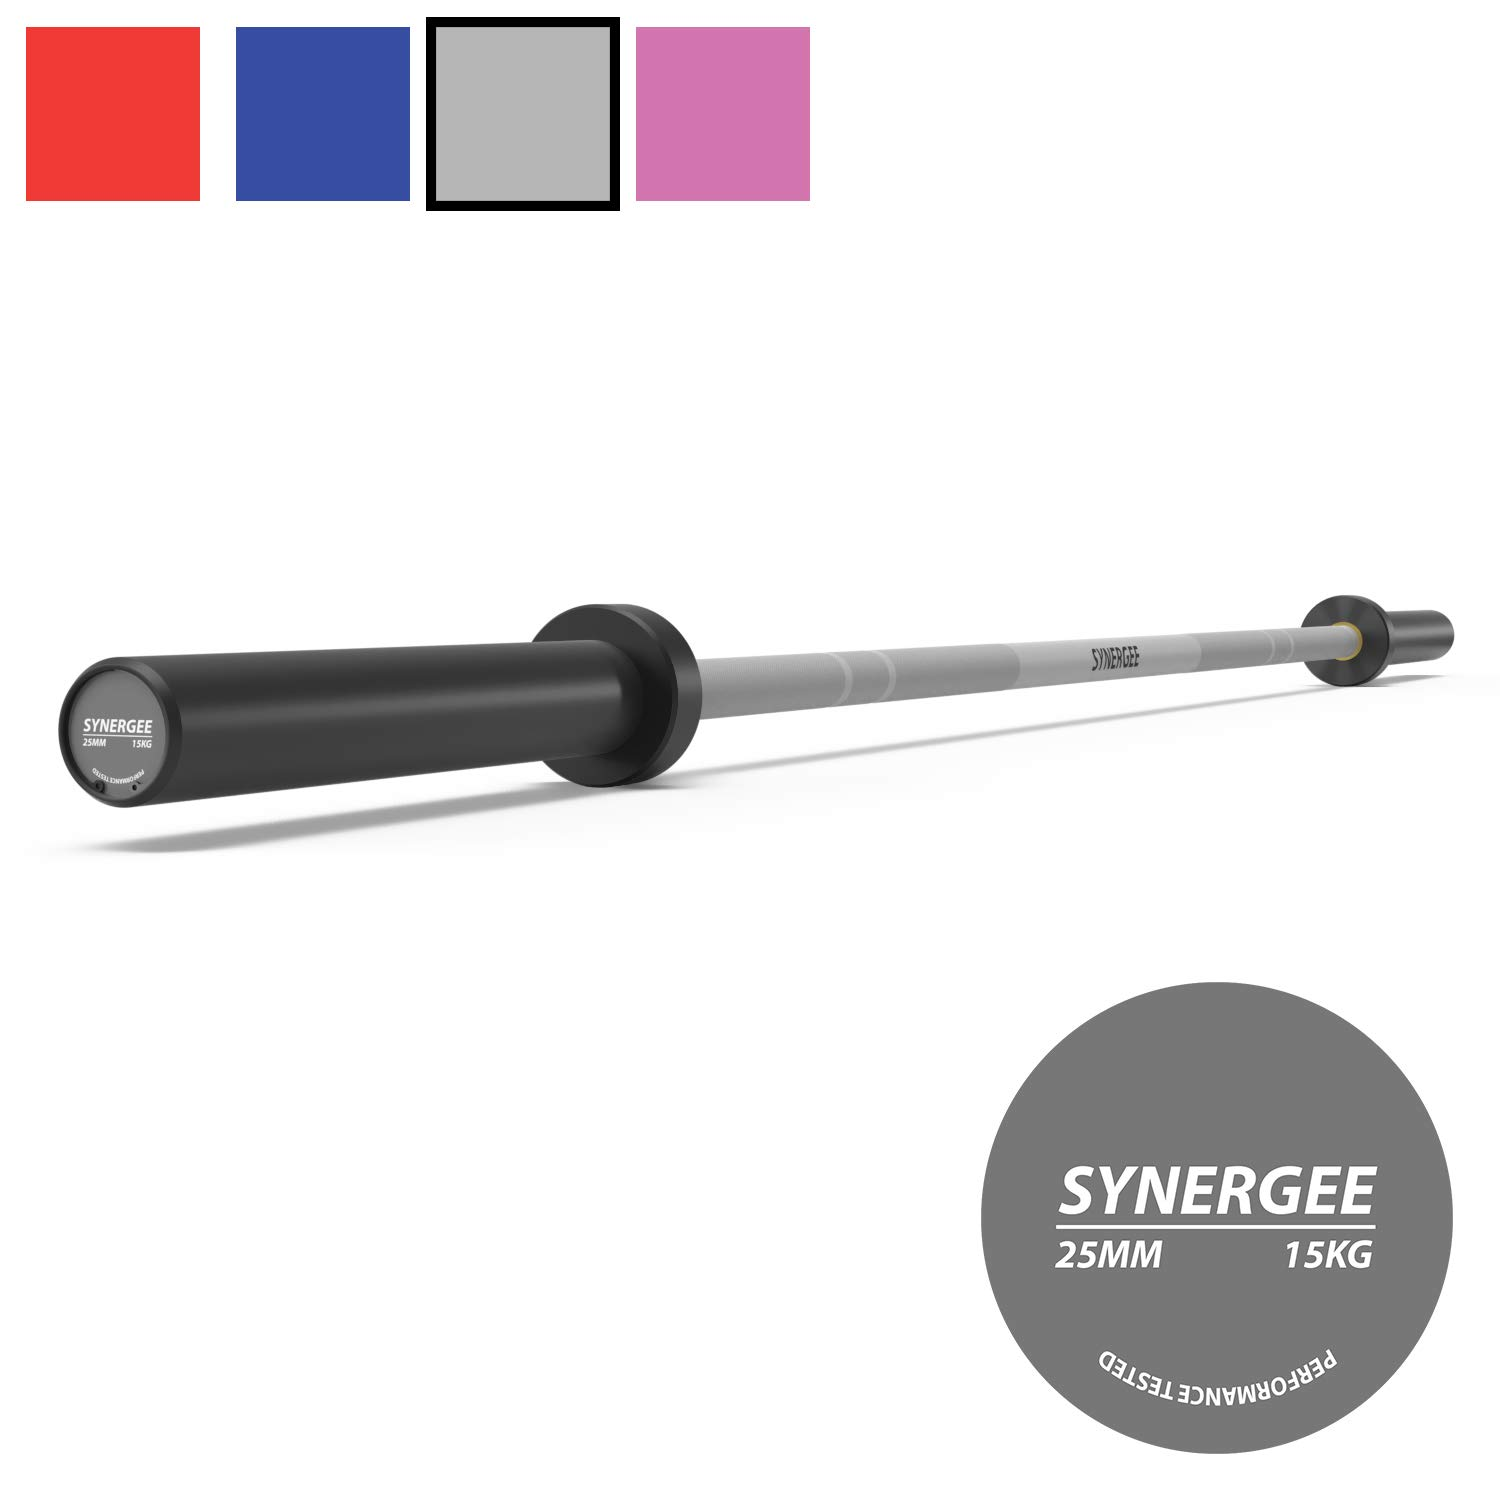 Rated 1500lbs for Weightlifting Pink Grey Blue Red Synergee Games 15kg and 20kg Colored Cerakote Barbells Powerlifting and Crossfit